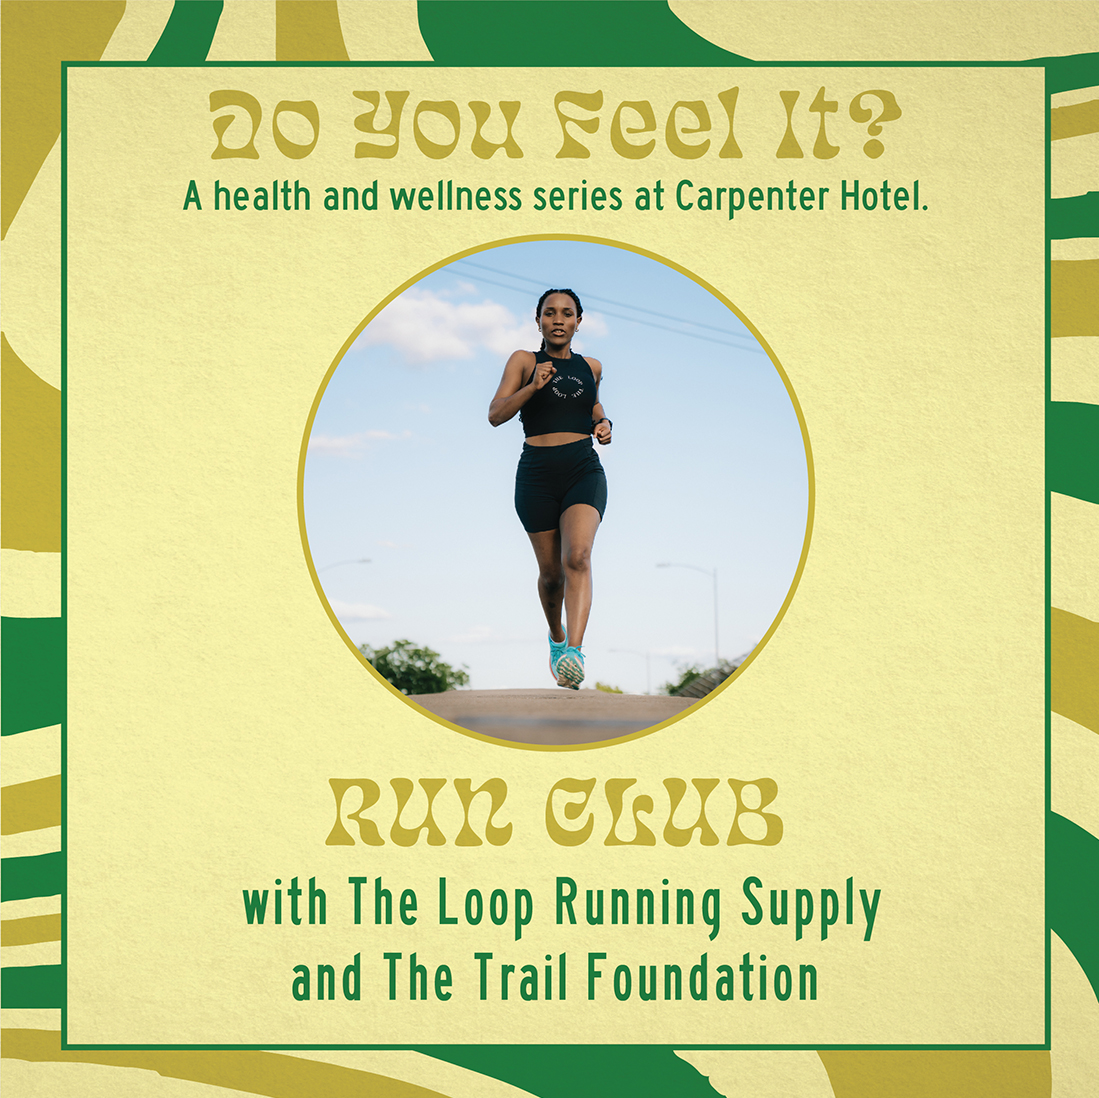 Poster for Do You Feel It? Run Club with The Loop Running Supply